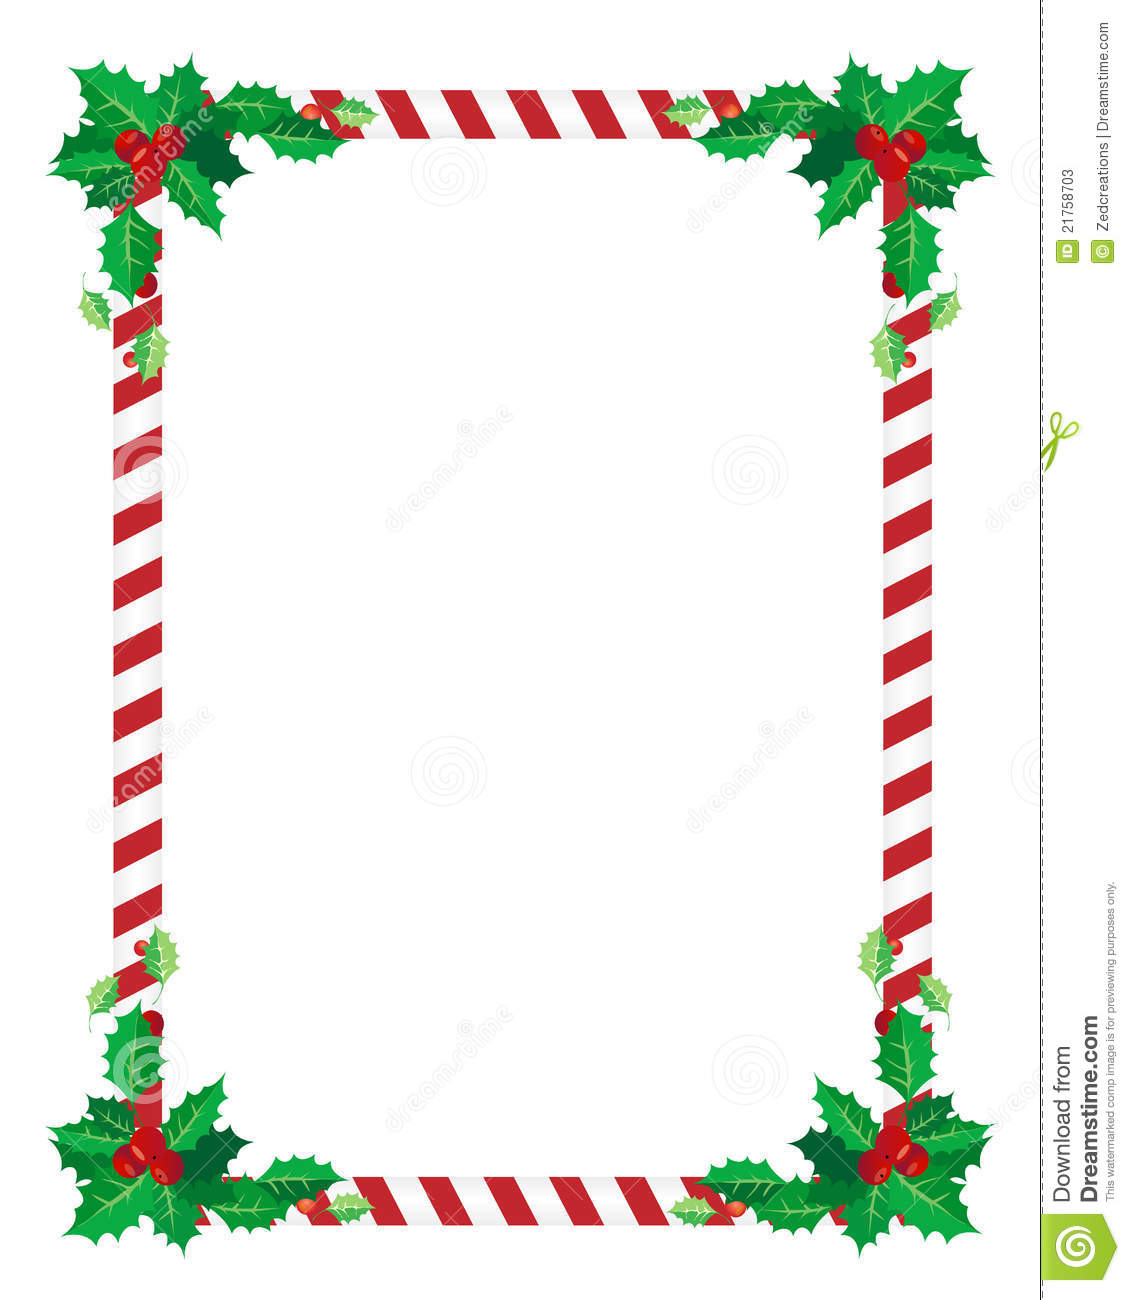 More similar stock images of ` Christmas border `